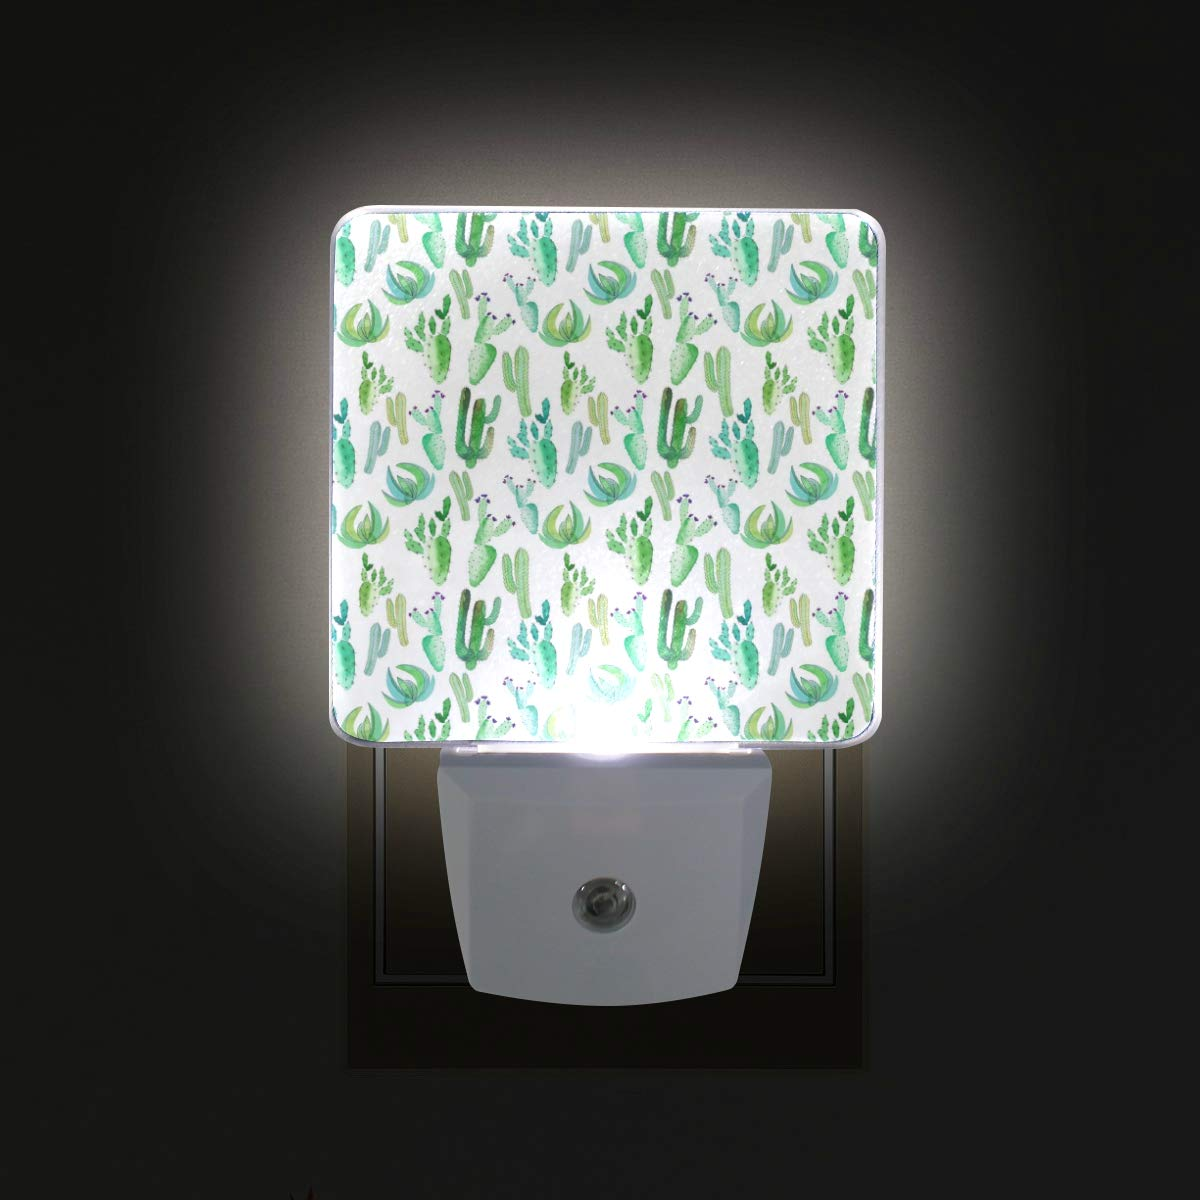 Brighter Mexican Tropical Floral LED Sensor Night Light for Kids&Adults Bedroom Dusk to Dawn Night Lights Lamp Perfect for Hallway,Dining Room